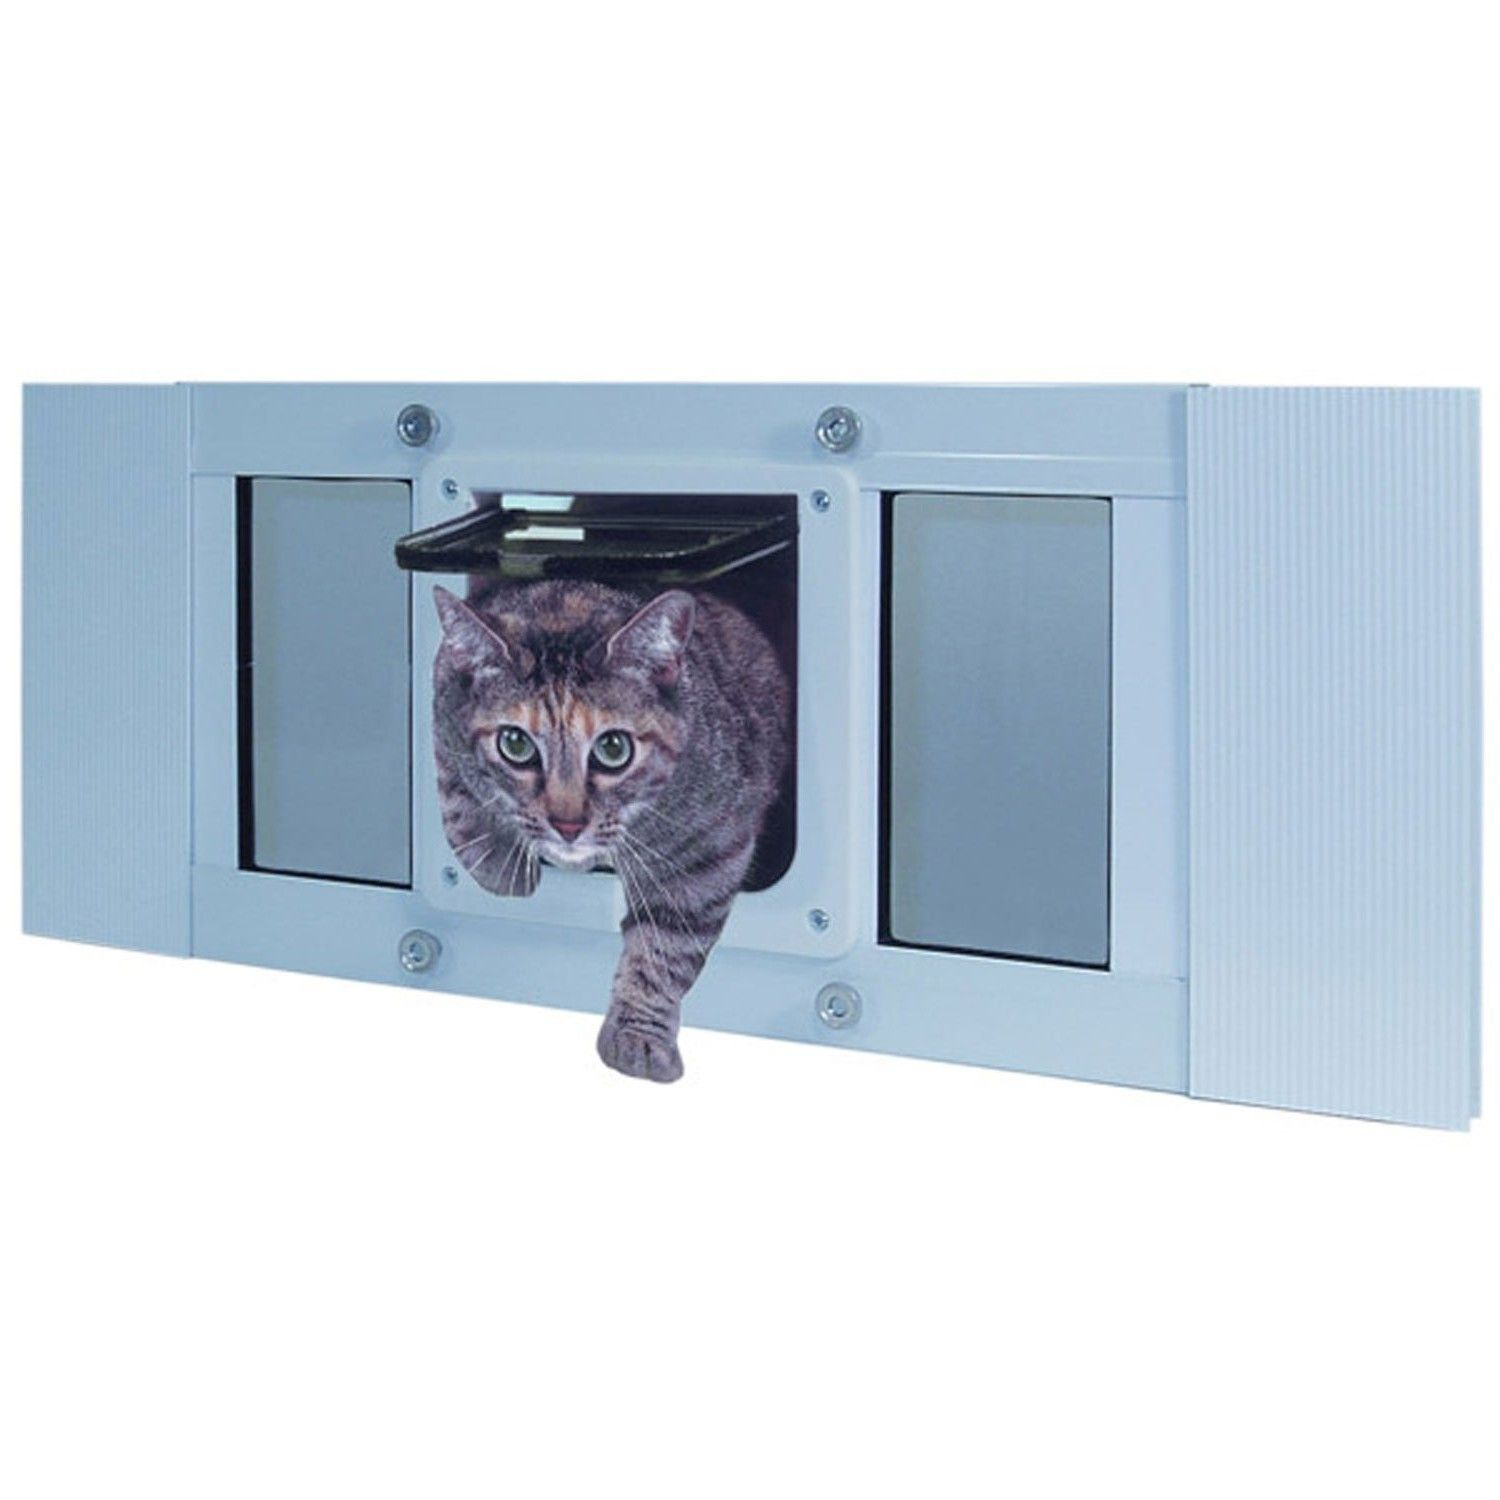 s coffee home size flap m window door store magnetic small lockable com for cat cottage safe product doors pet kitty animal screen aliexpress way white buy dog gate